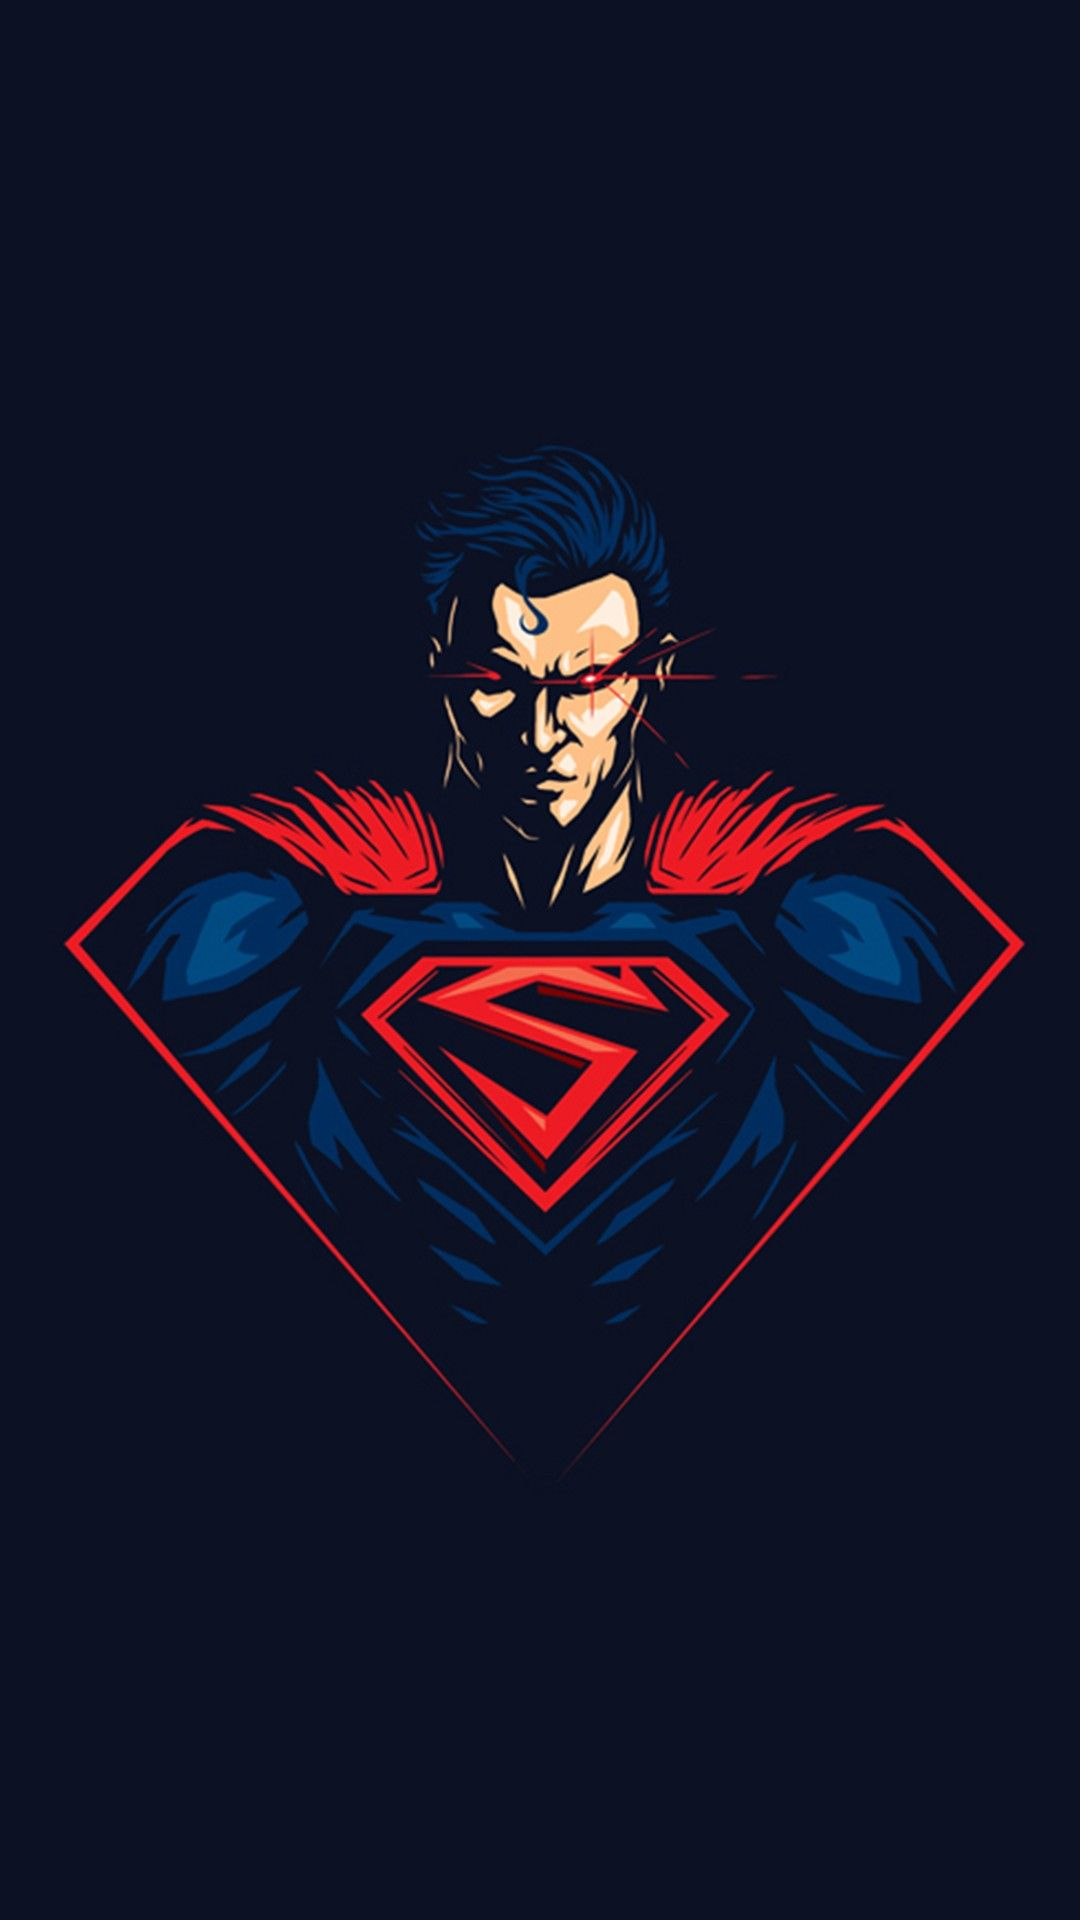 Wallpaper Backgrounds Iphone 7 Art Work Superman Minimalist Guitar Marvel Stampin Up Printed